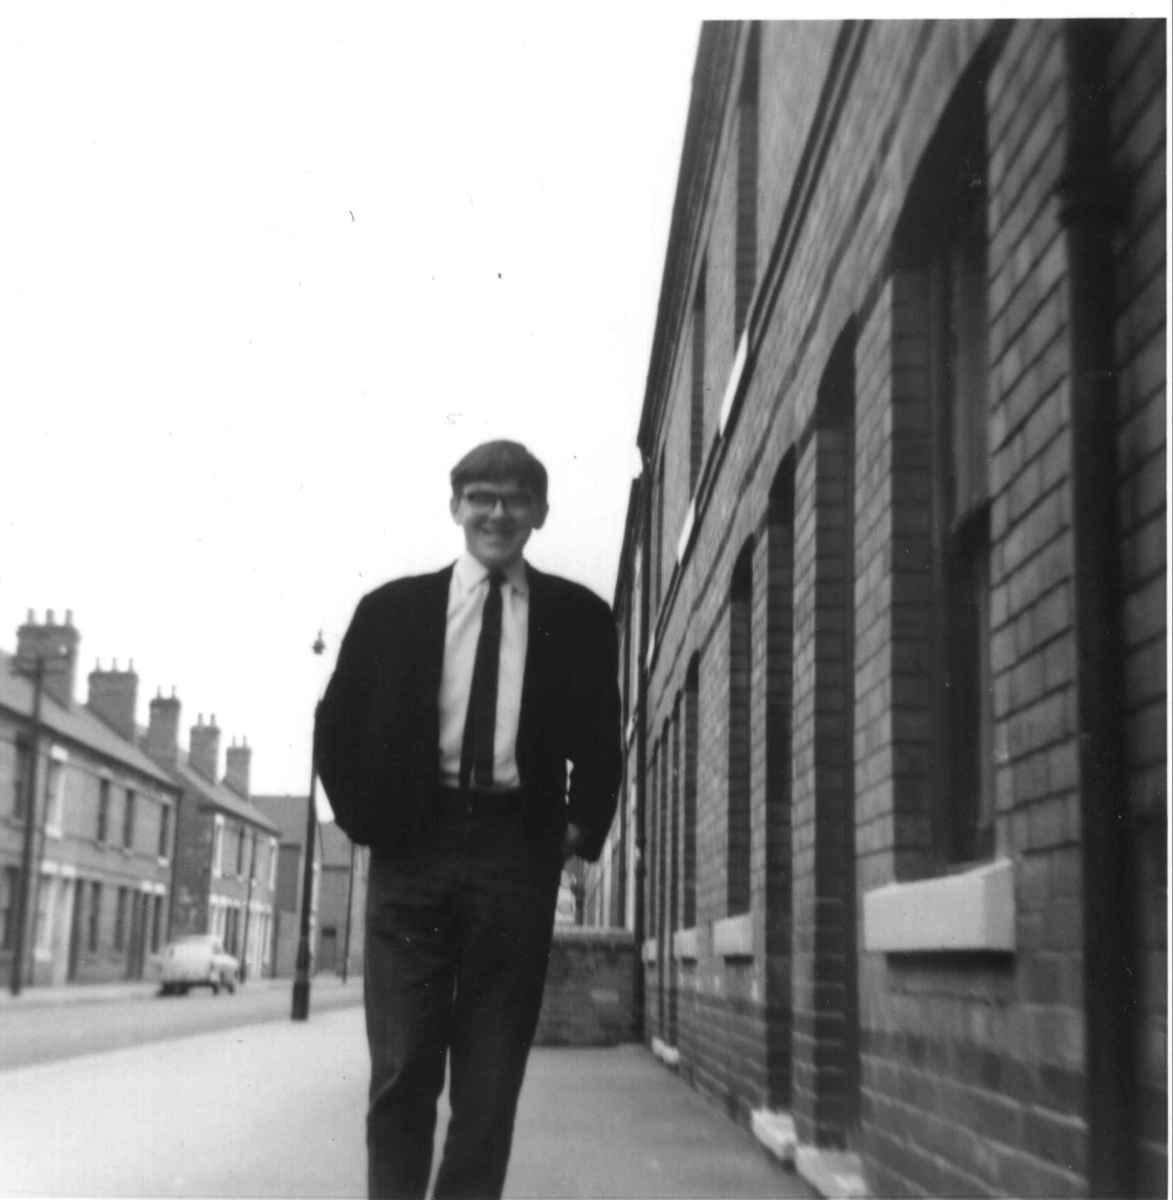 My brother standing on the street outside the house where I grew up